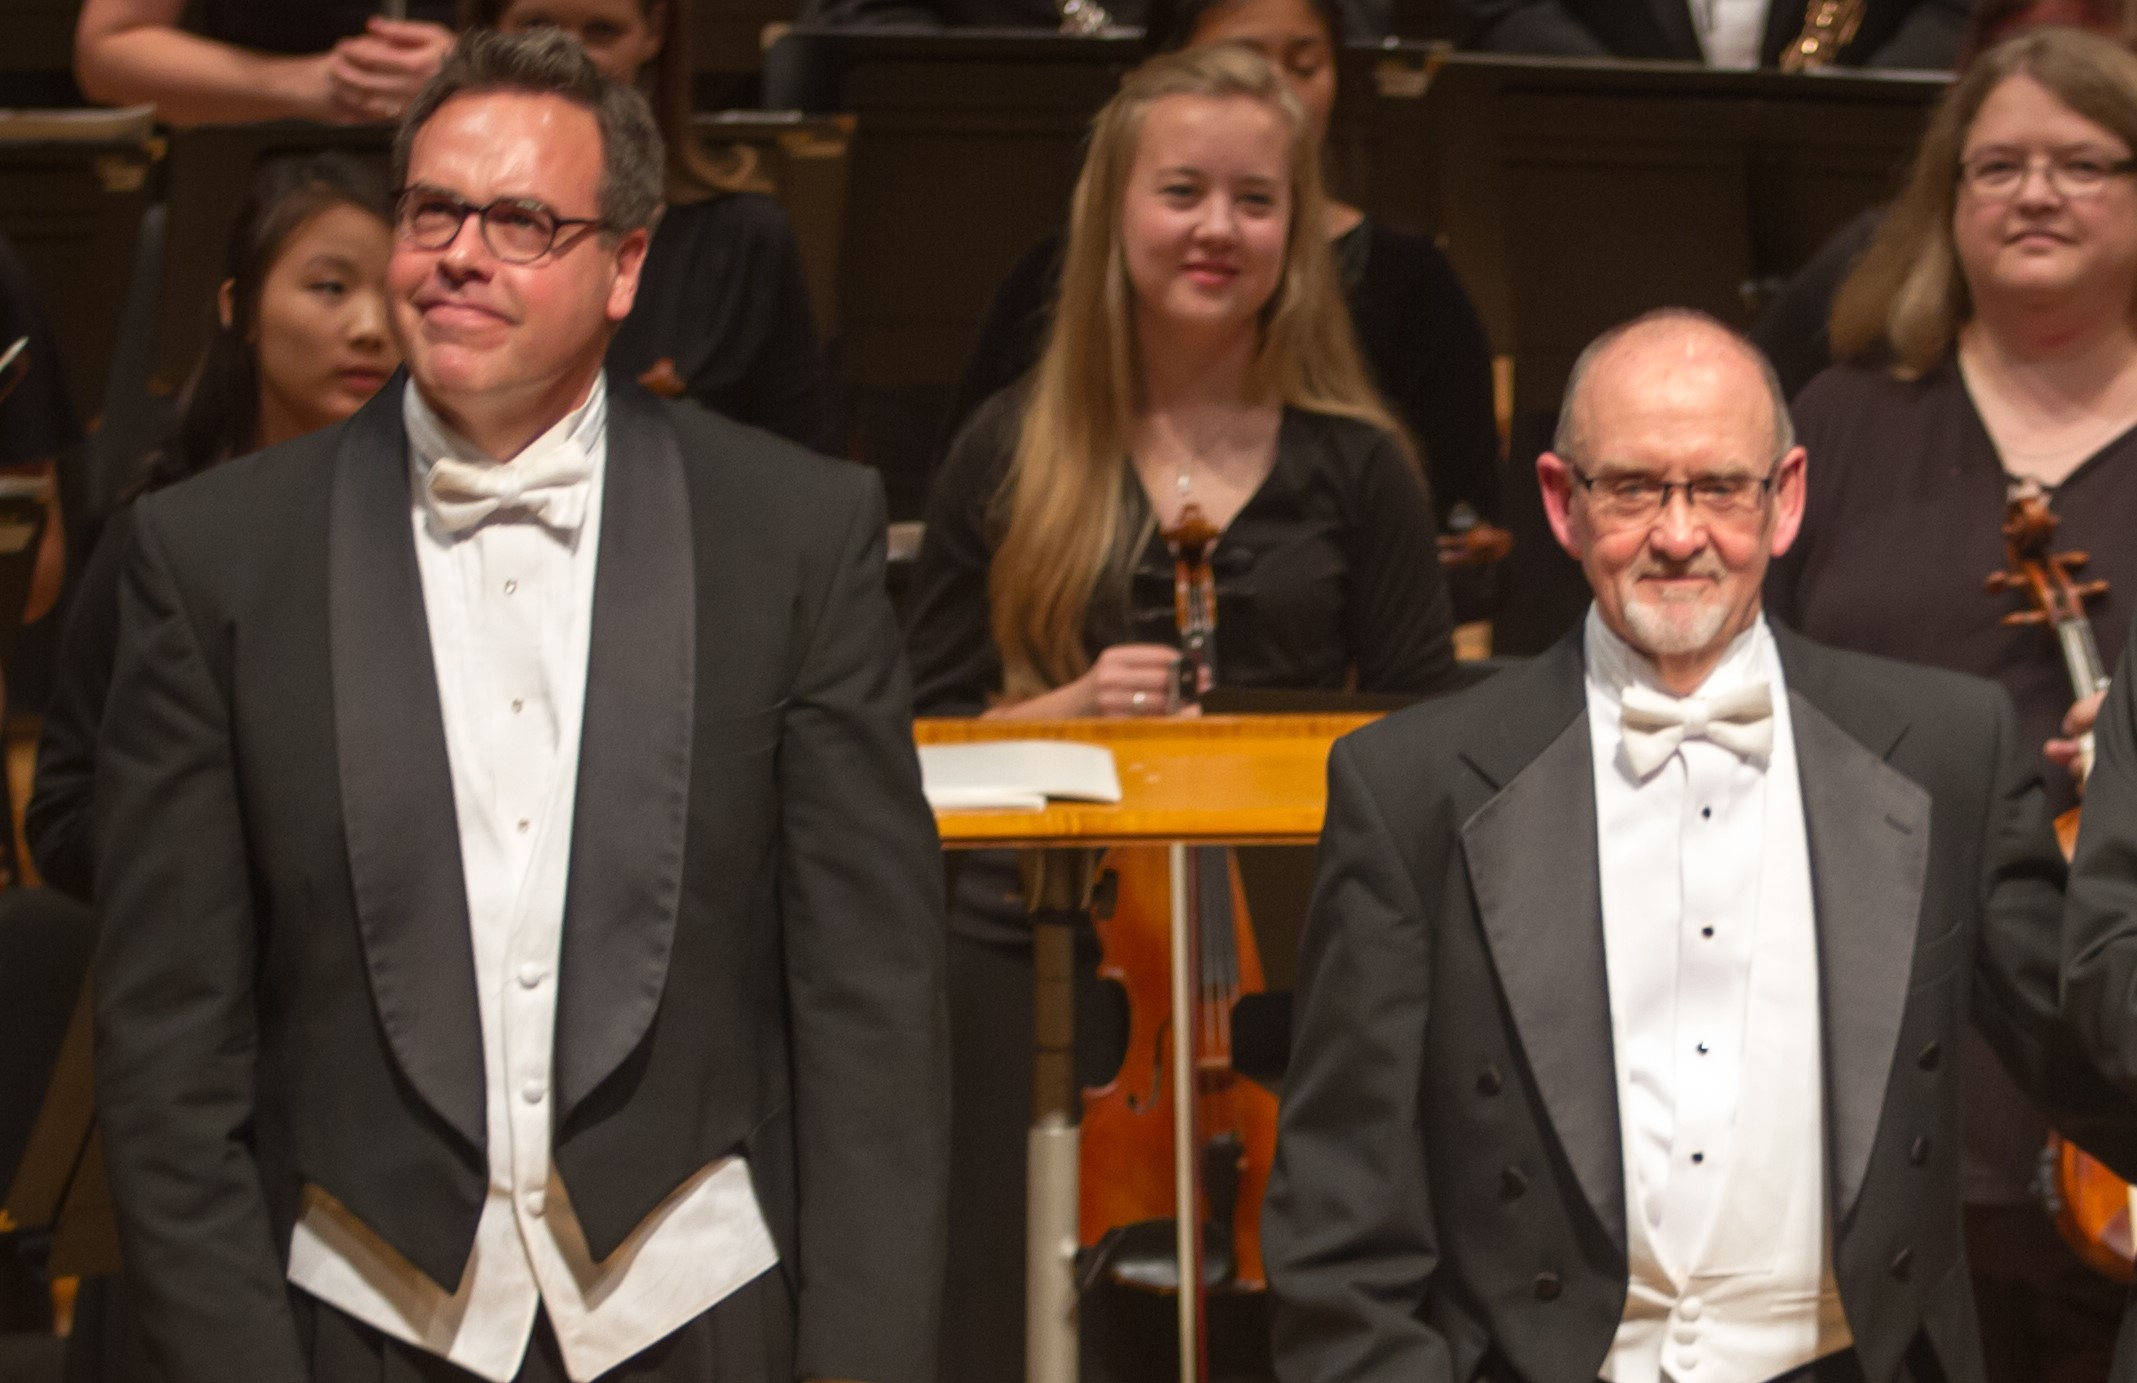 Beginning this season, longtime friends and colleagues, Kirt Mosier (left) and Russ Berlin will share conducting duties for the Lee's Summit Symphony.